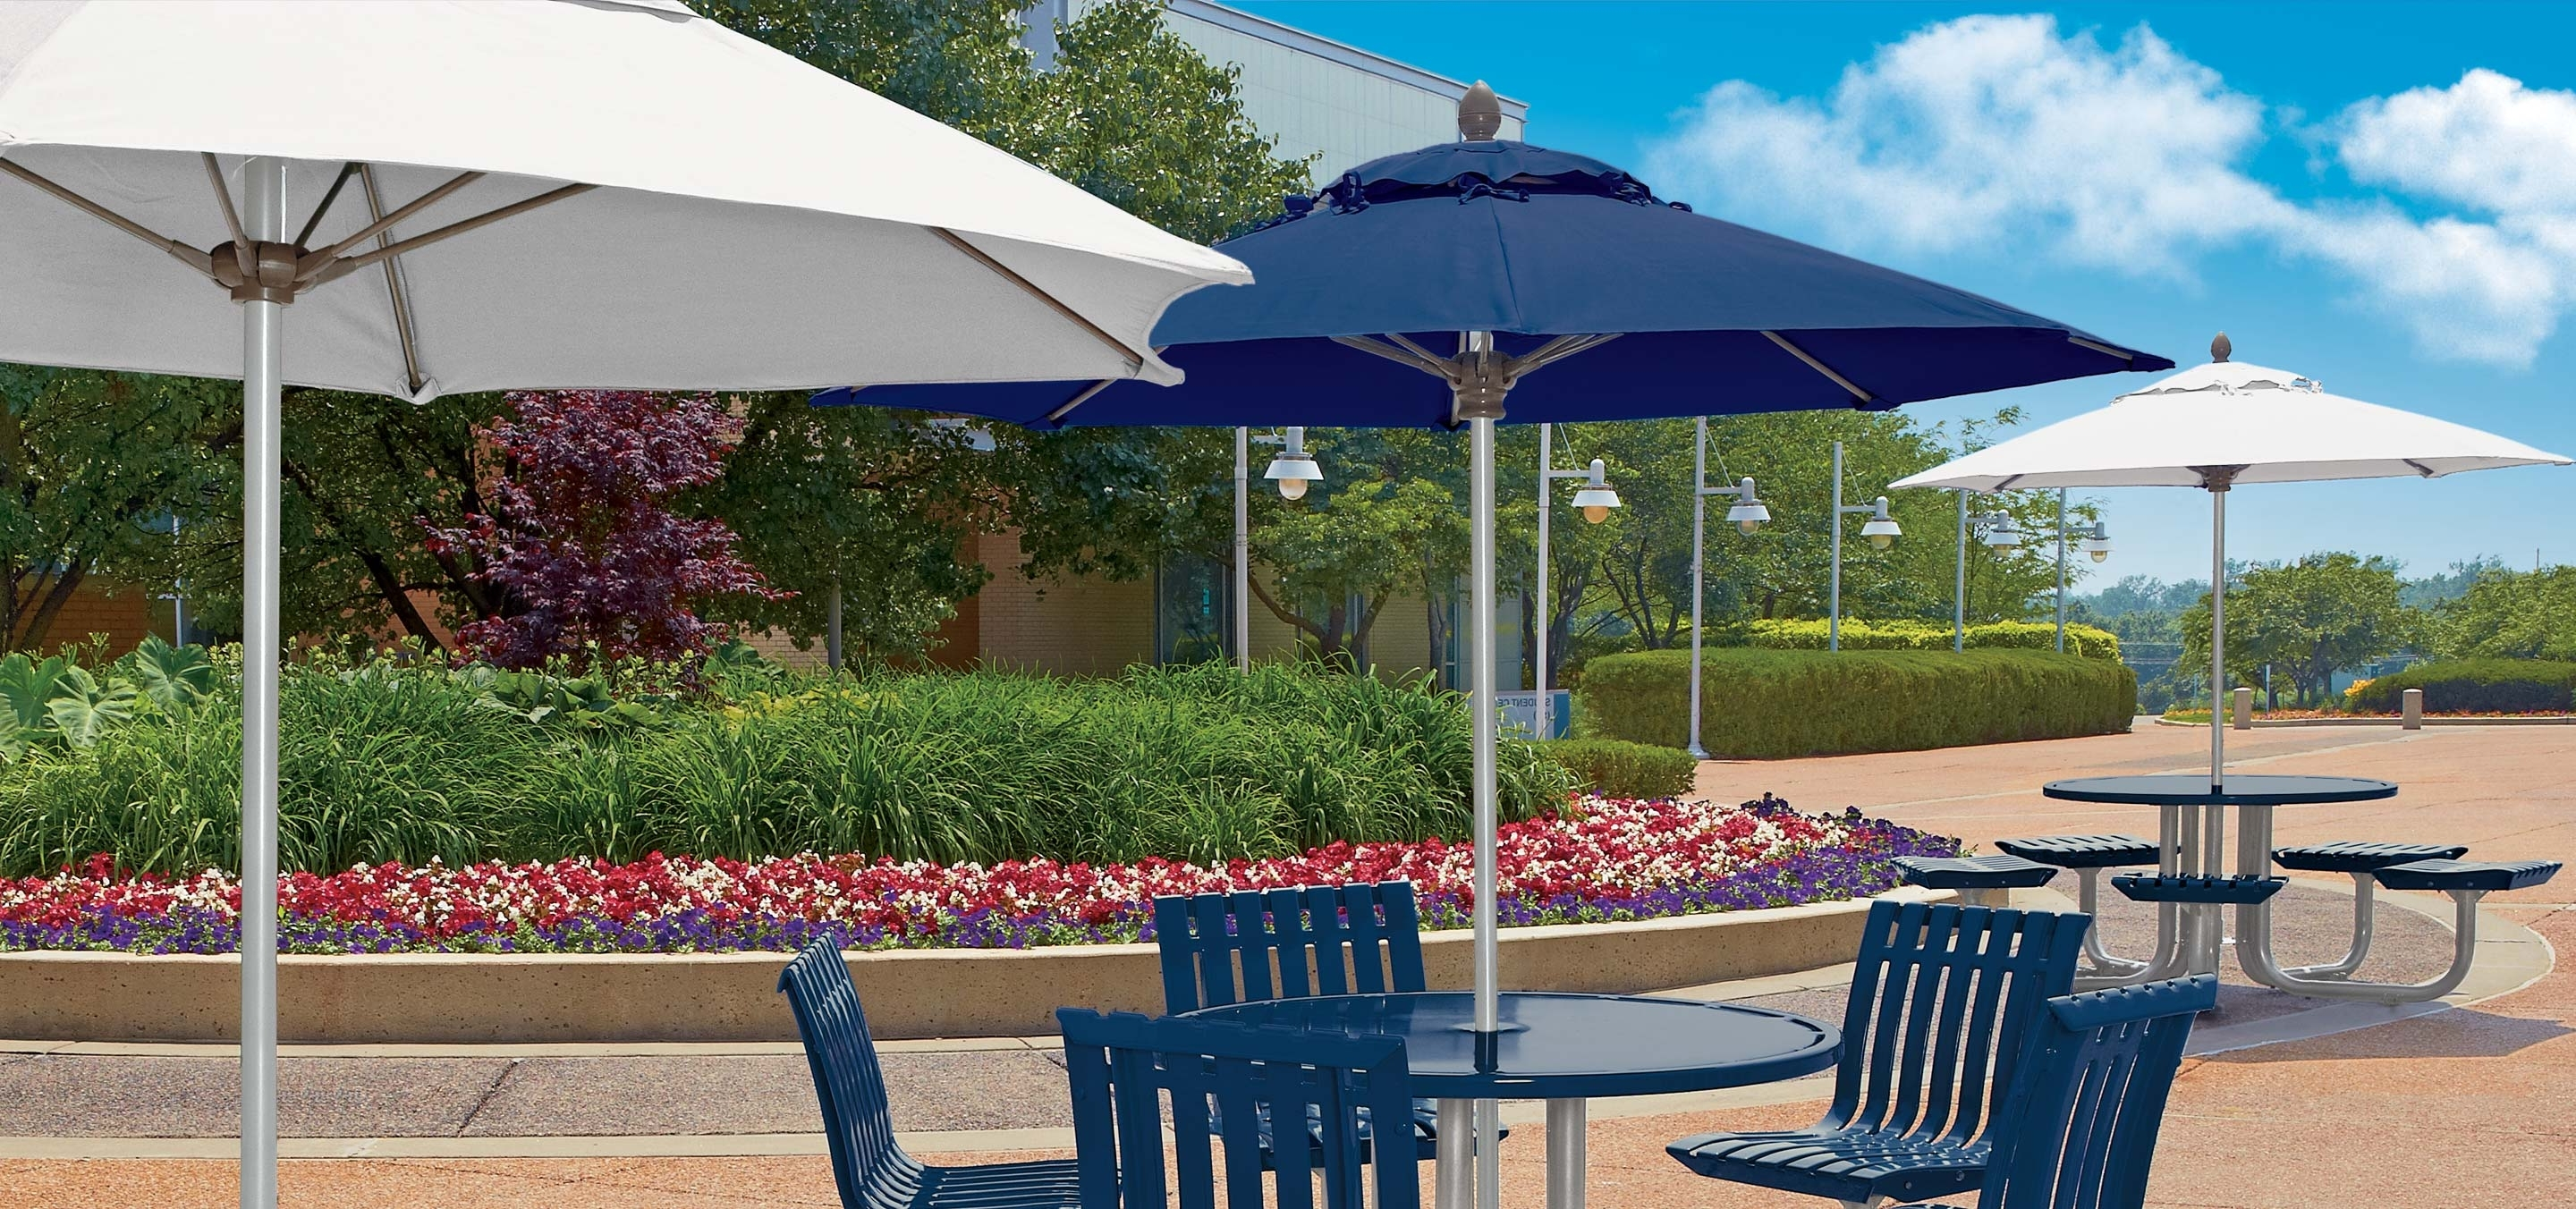 Well Known Patio Umbrellas For High Wind Areas With Umbrellas (View 17 of 20)